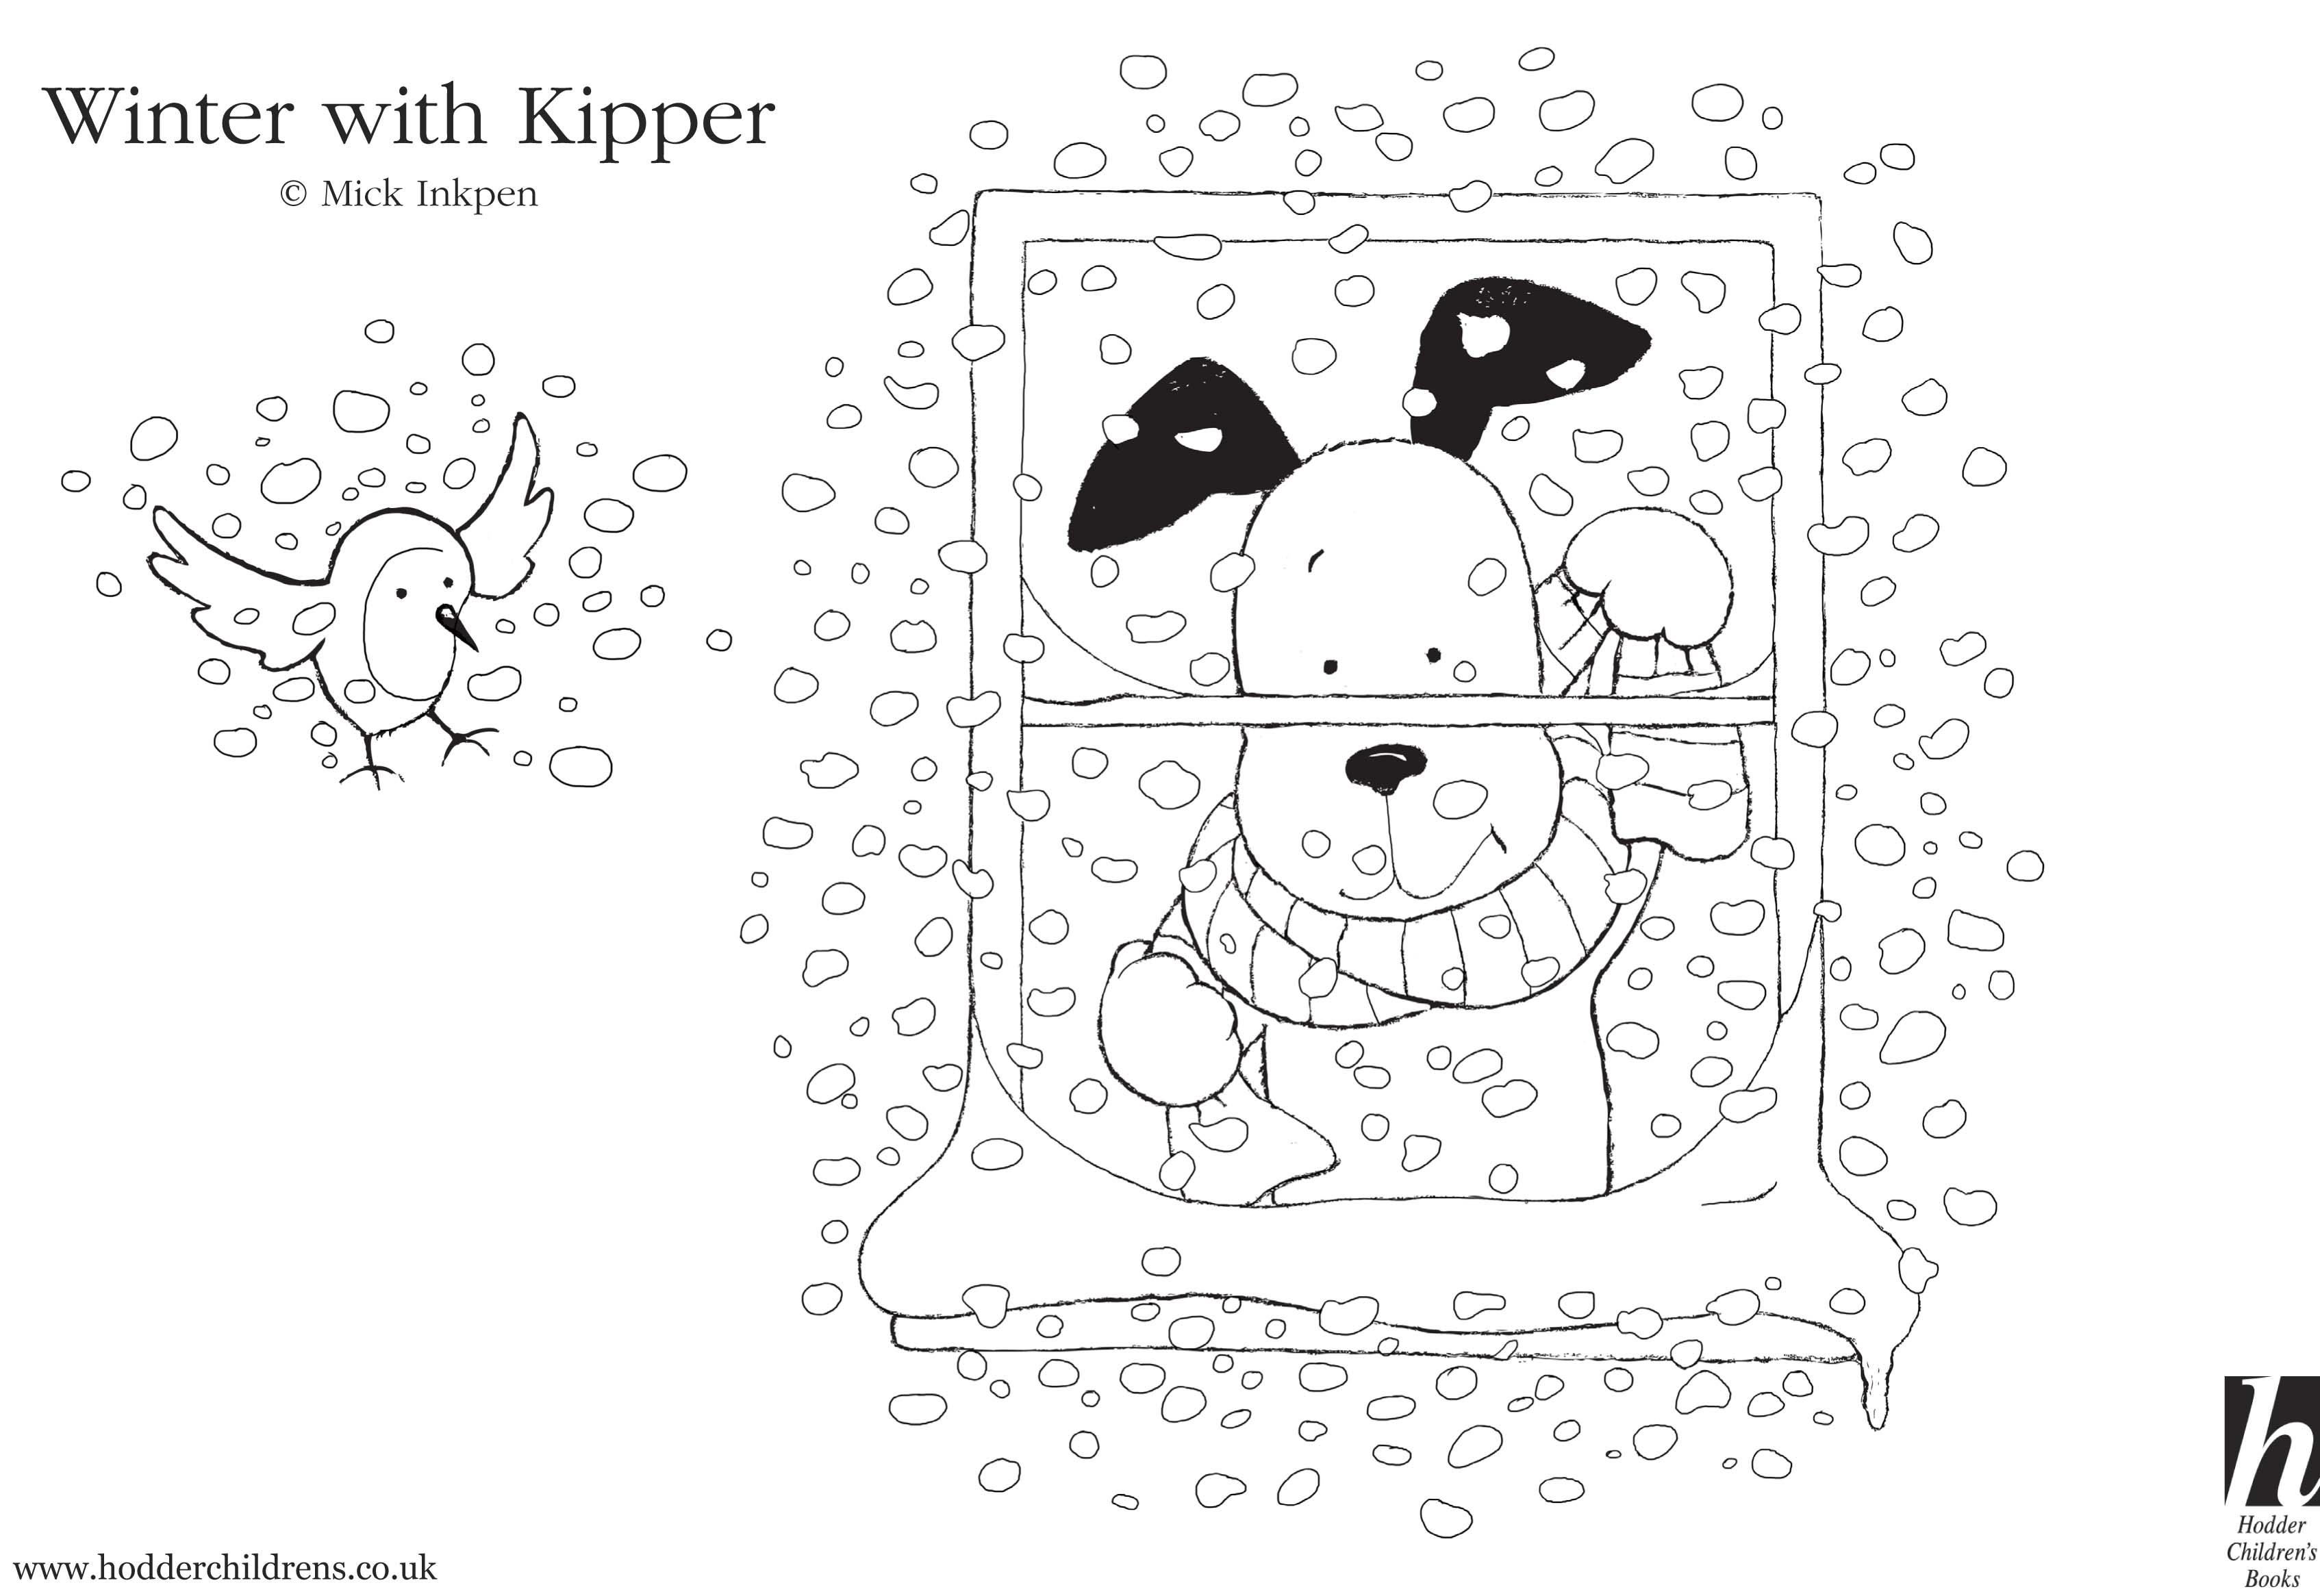 Kipperwinter2 act col 900443